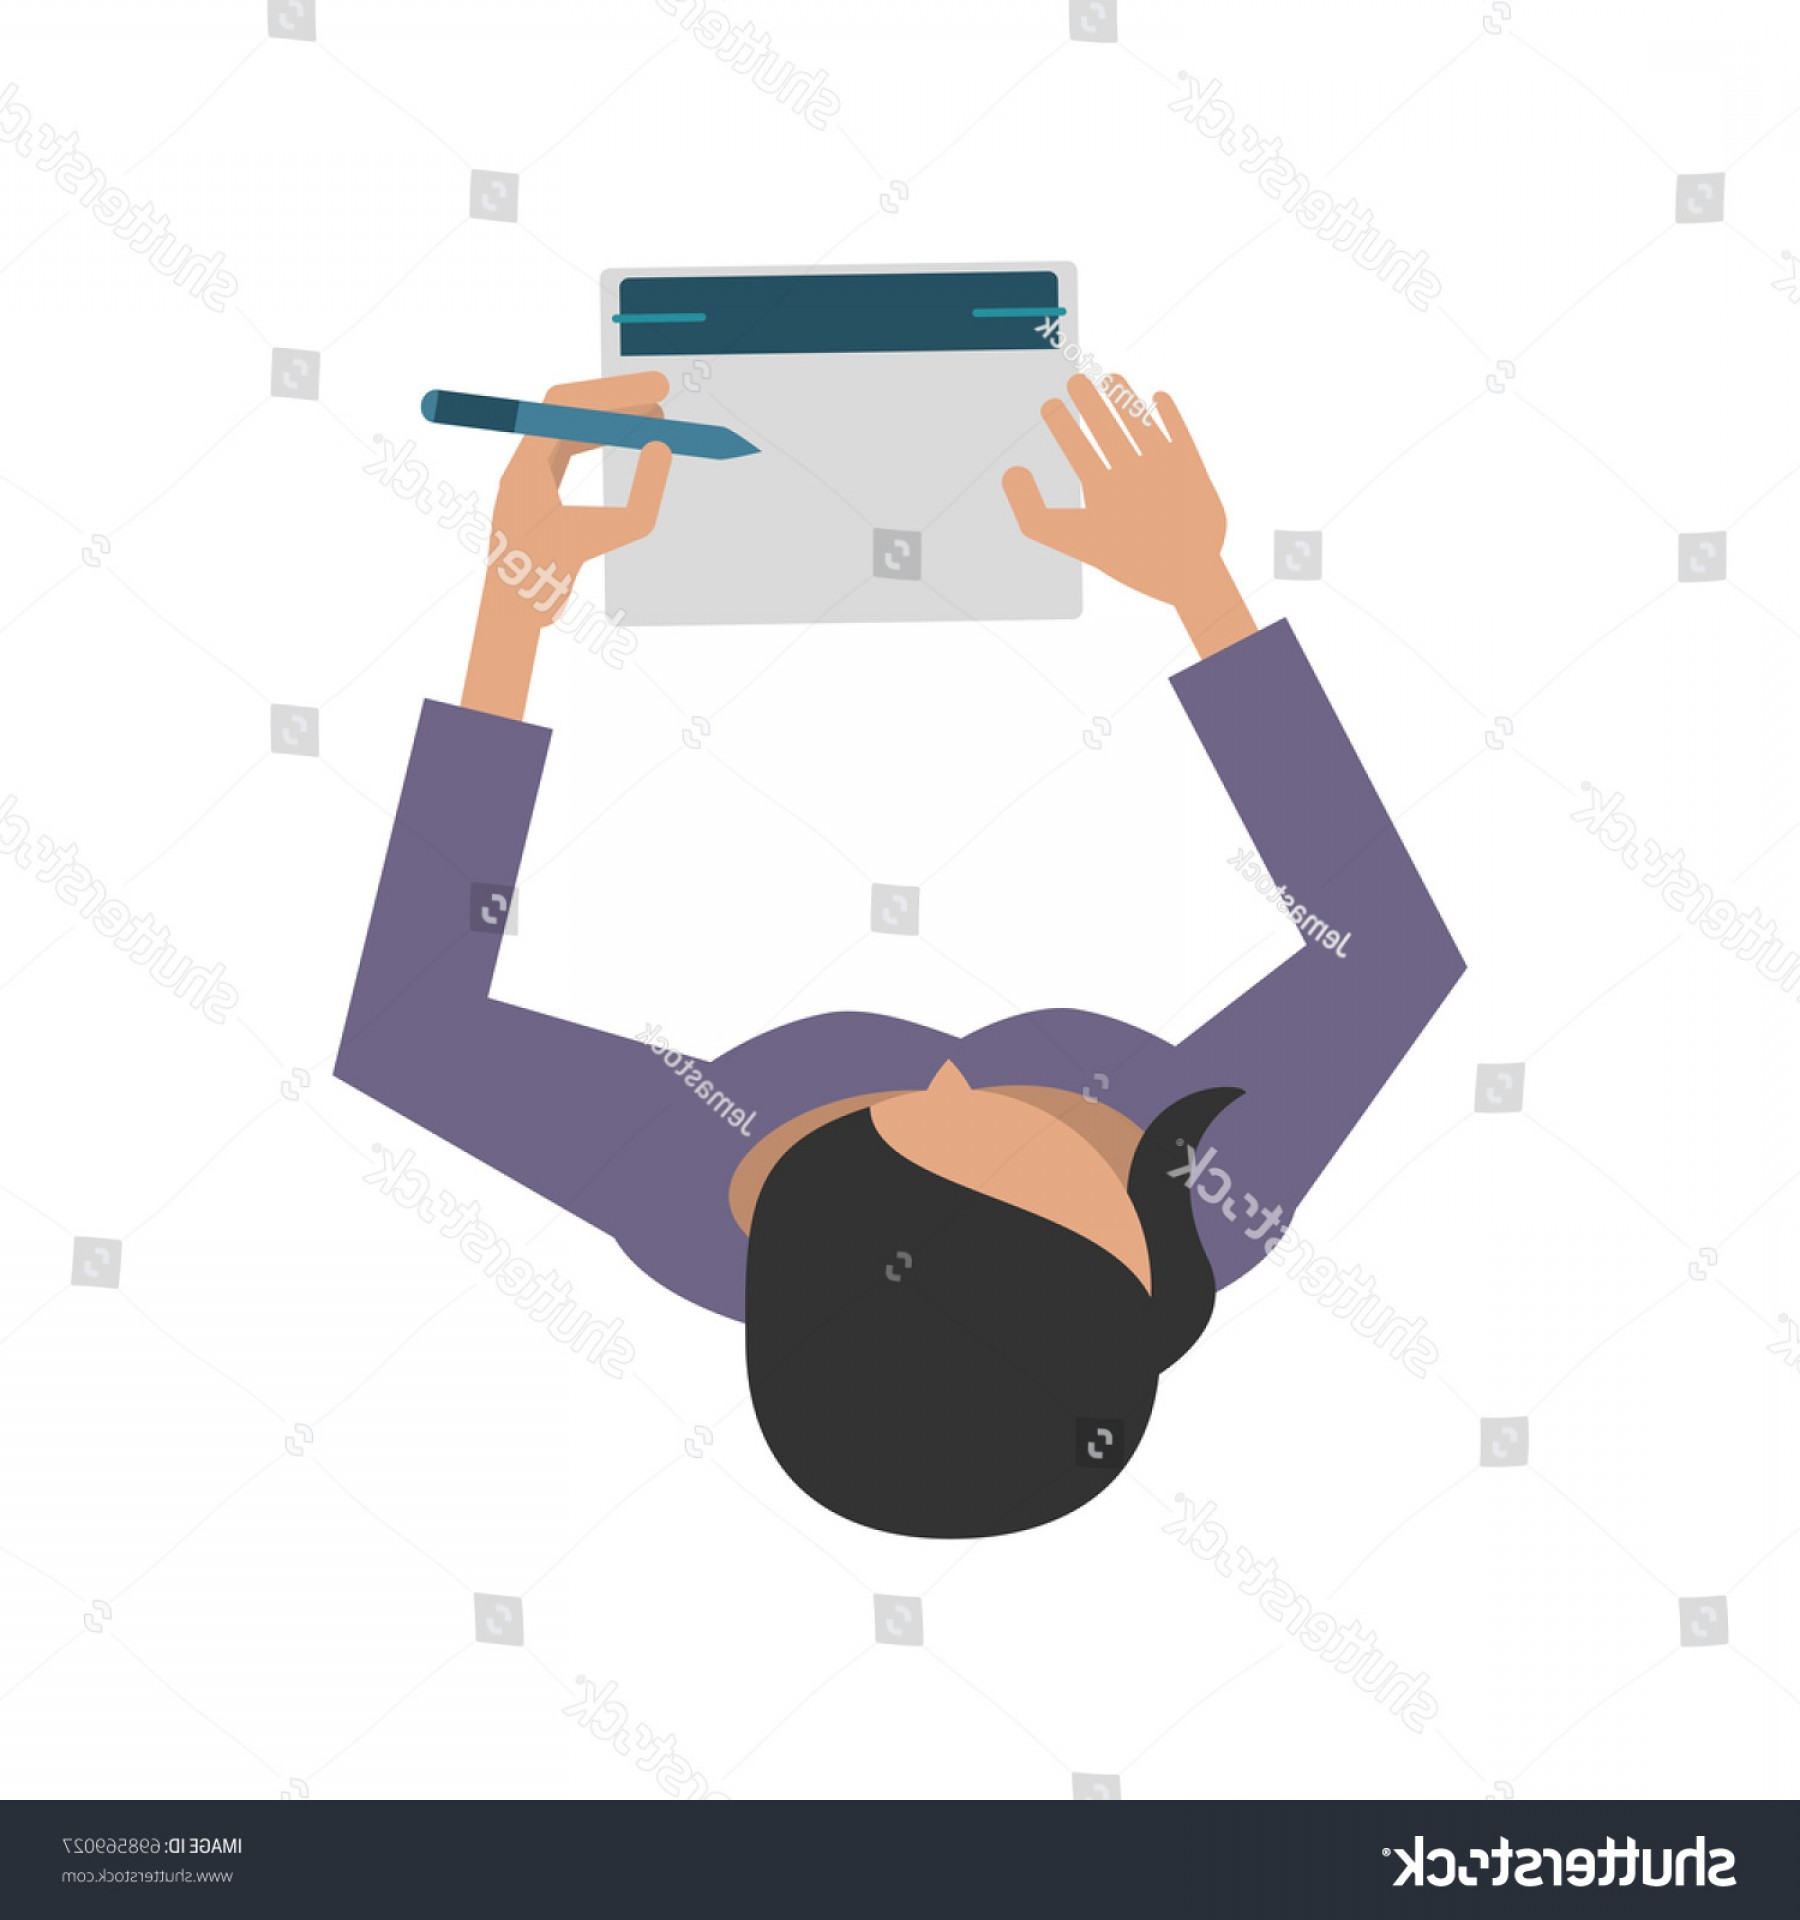 Notepad Writing Hand Vector: Woman Writing On Notepad Topview Icon